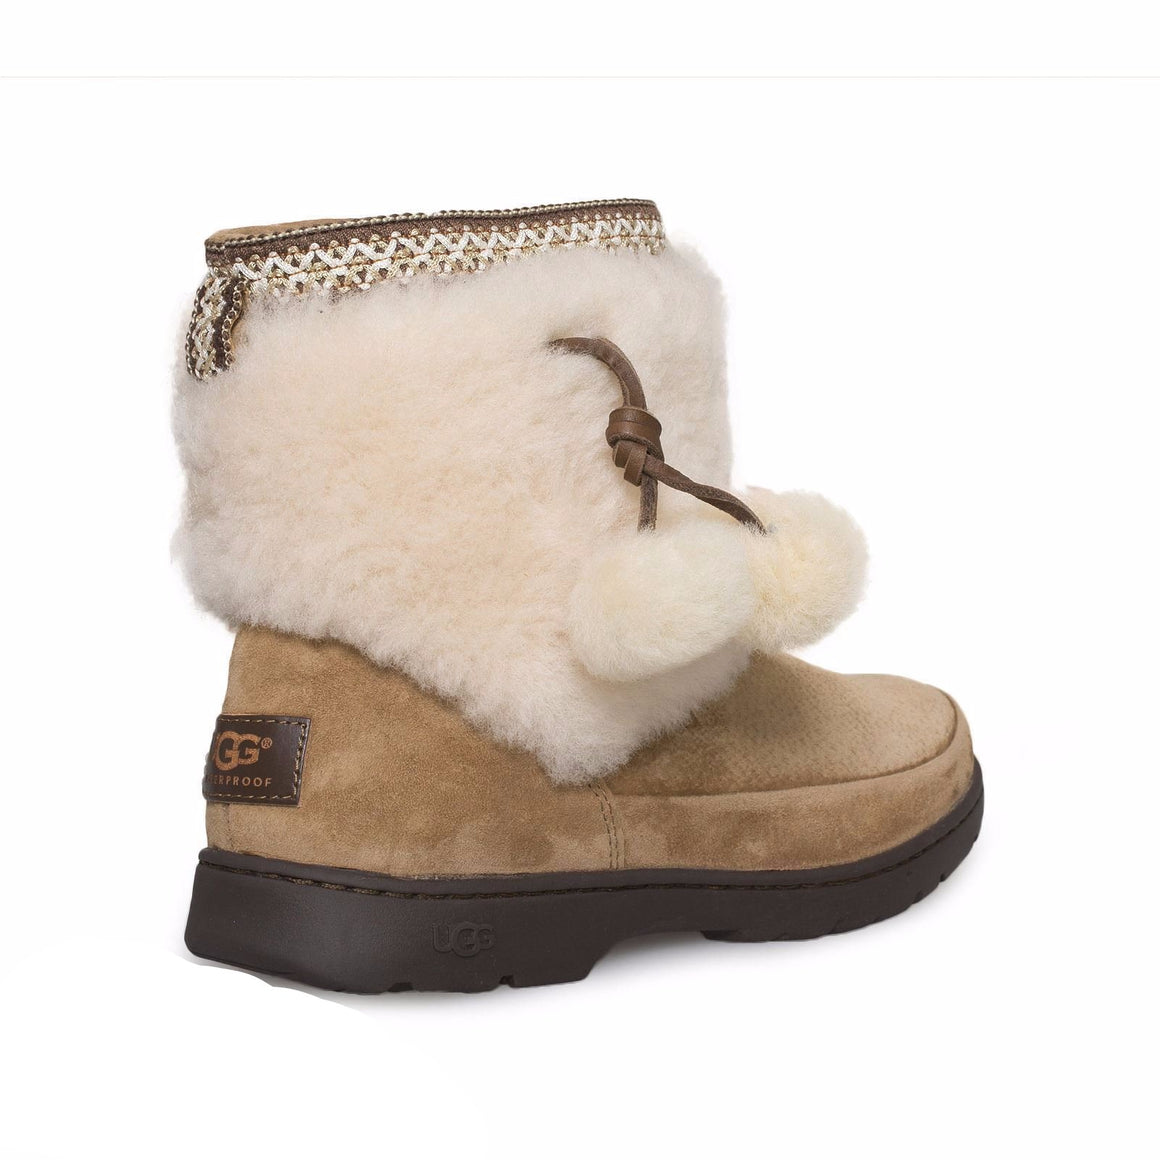 UGG Brie Chestnut Boots